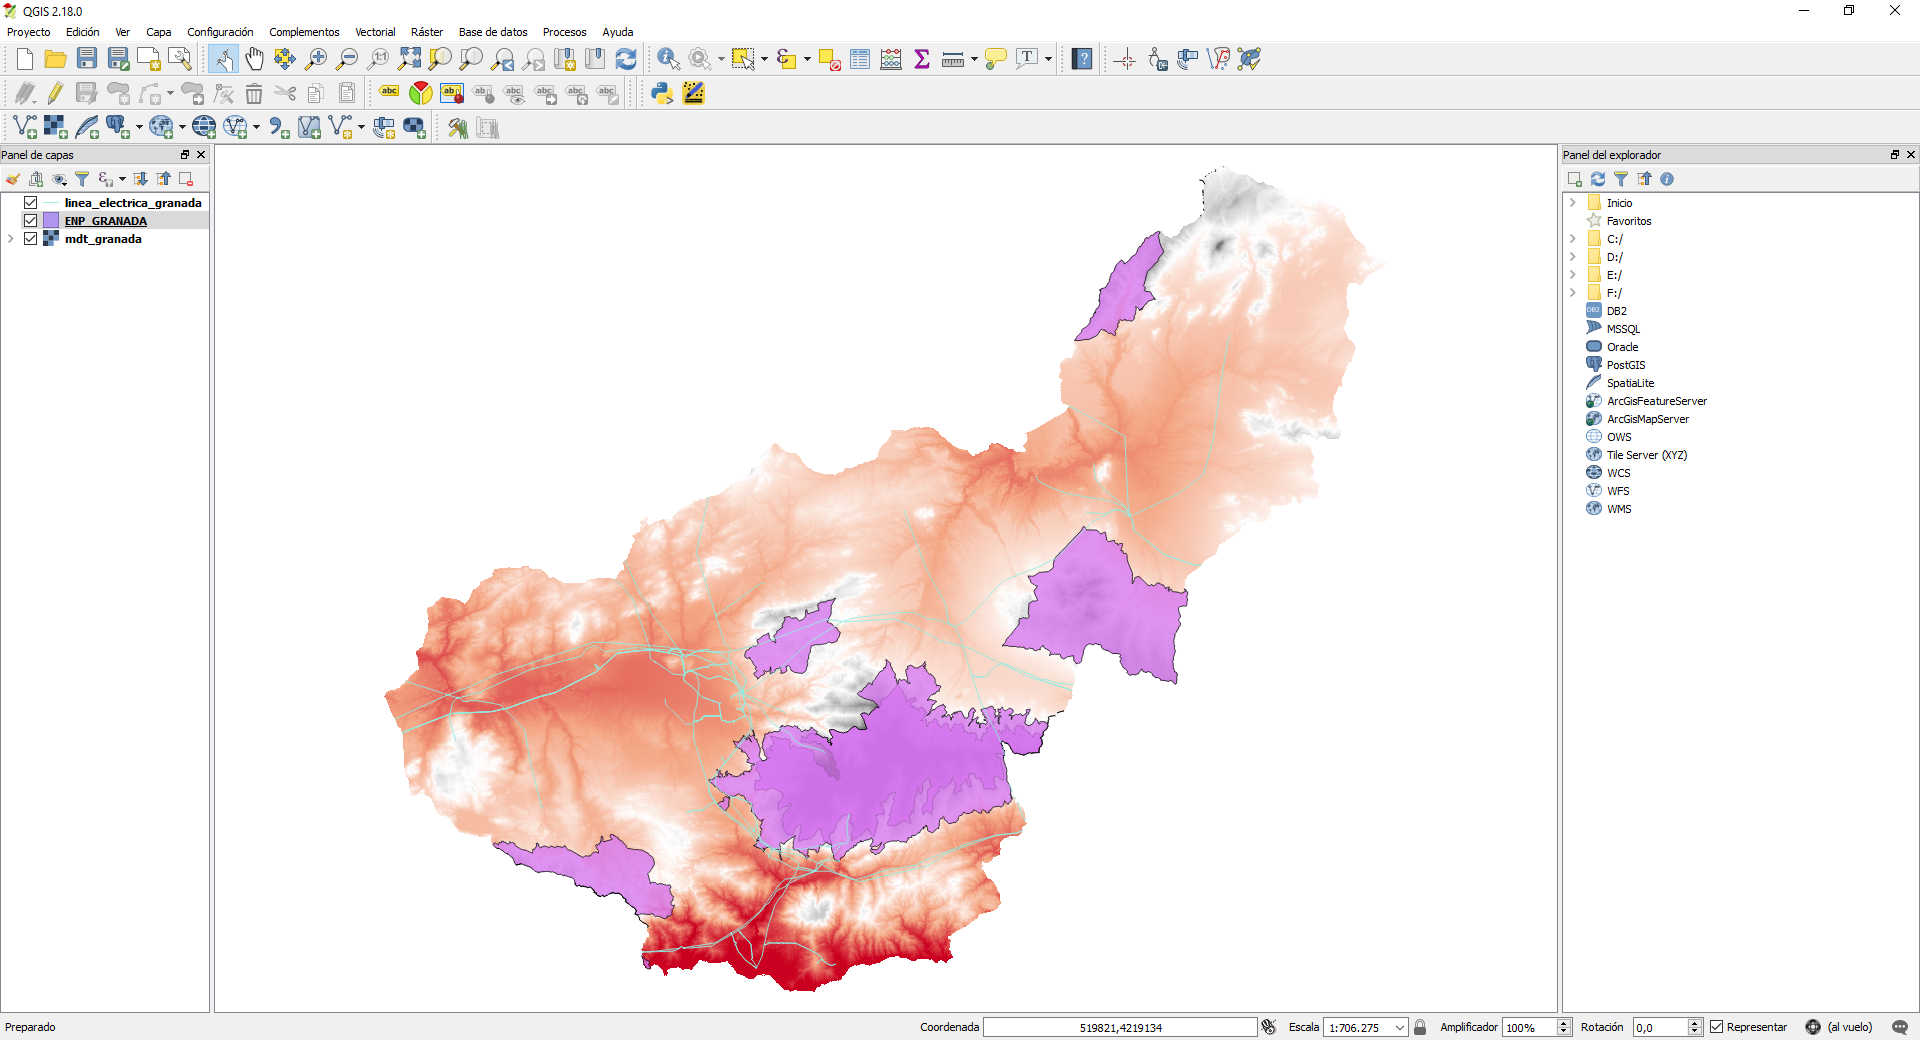 gis_open_source_qgis_1